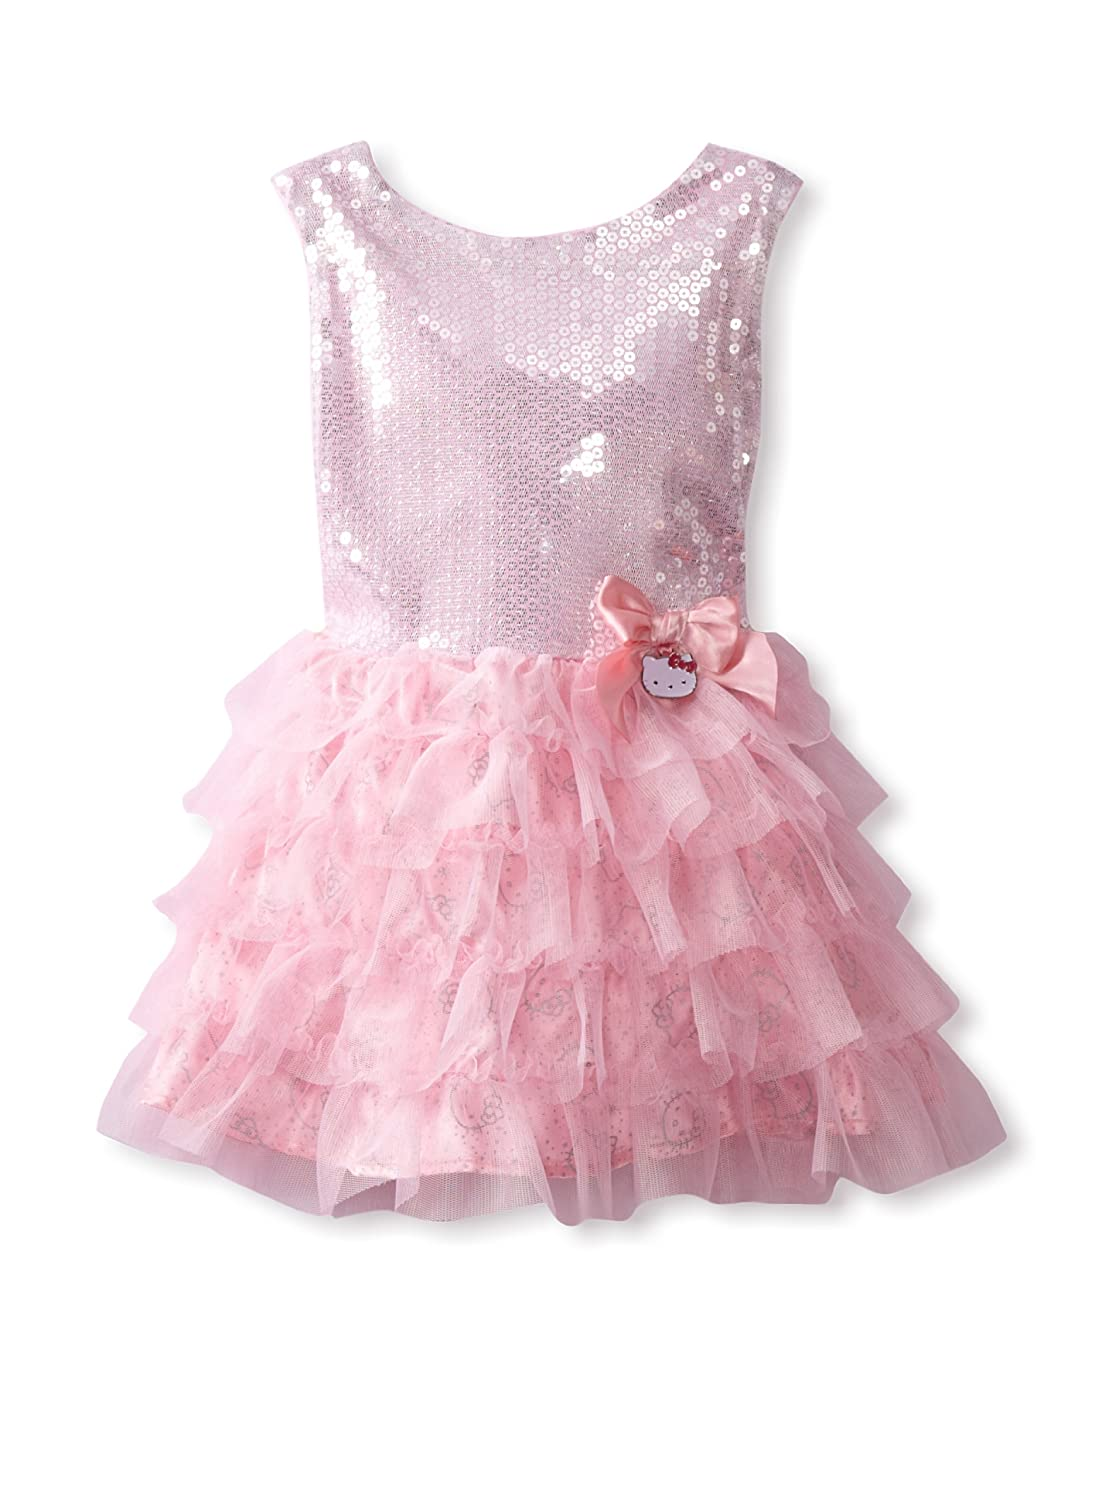 e90aa9c7f Amazon.com: Hello Kitty Little Girls' Princess Easter Sequin Tiered Holiday  Dress, Pink, 2T: Special Occasion Dresses: Clothing